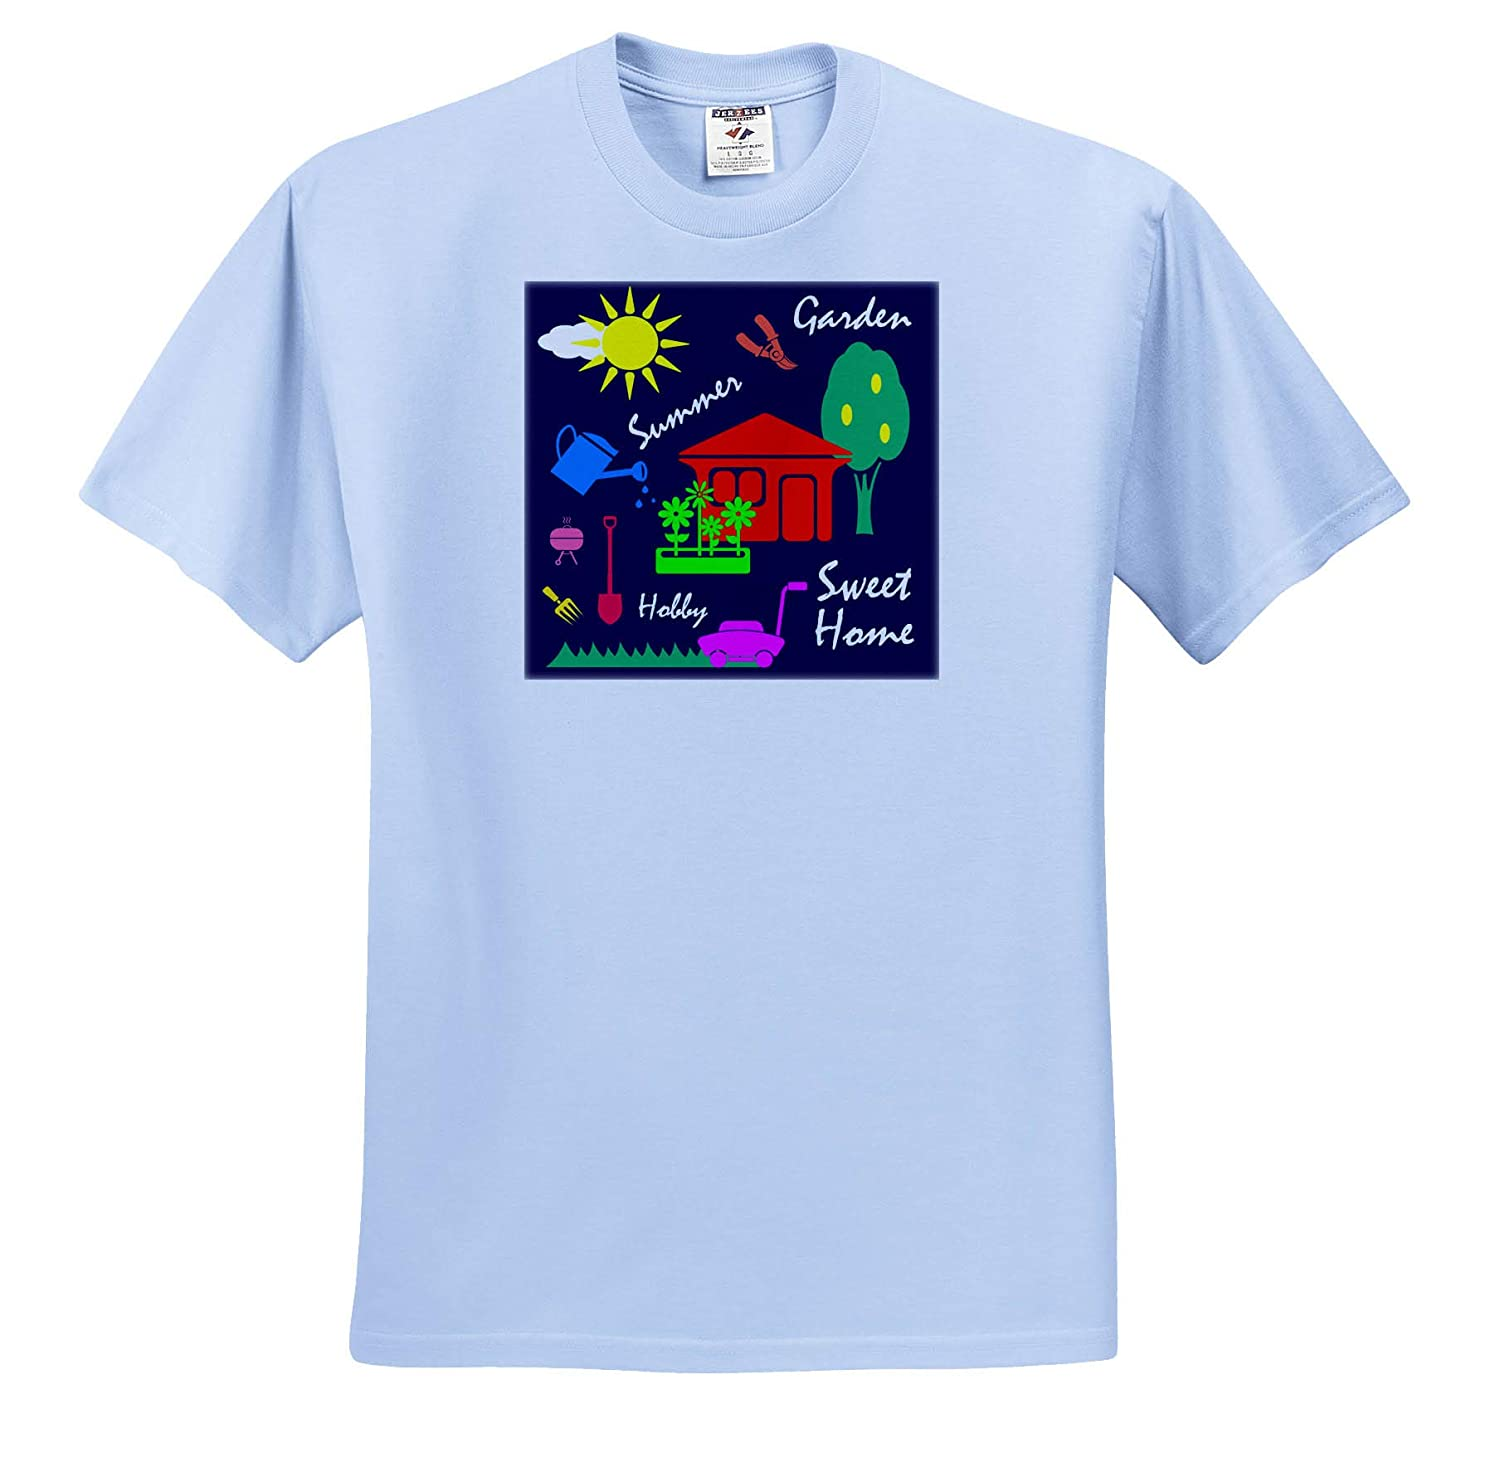 Garden 3dRose Alexis Design Adult T-Shirt XL ts/_313218 Simple Summer Gardening Decor of Colorful Shapes on Navy Blue